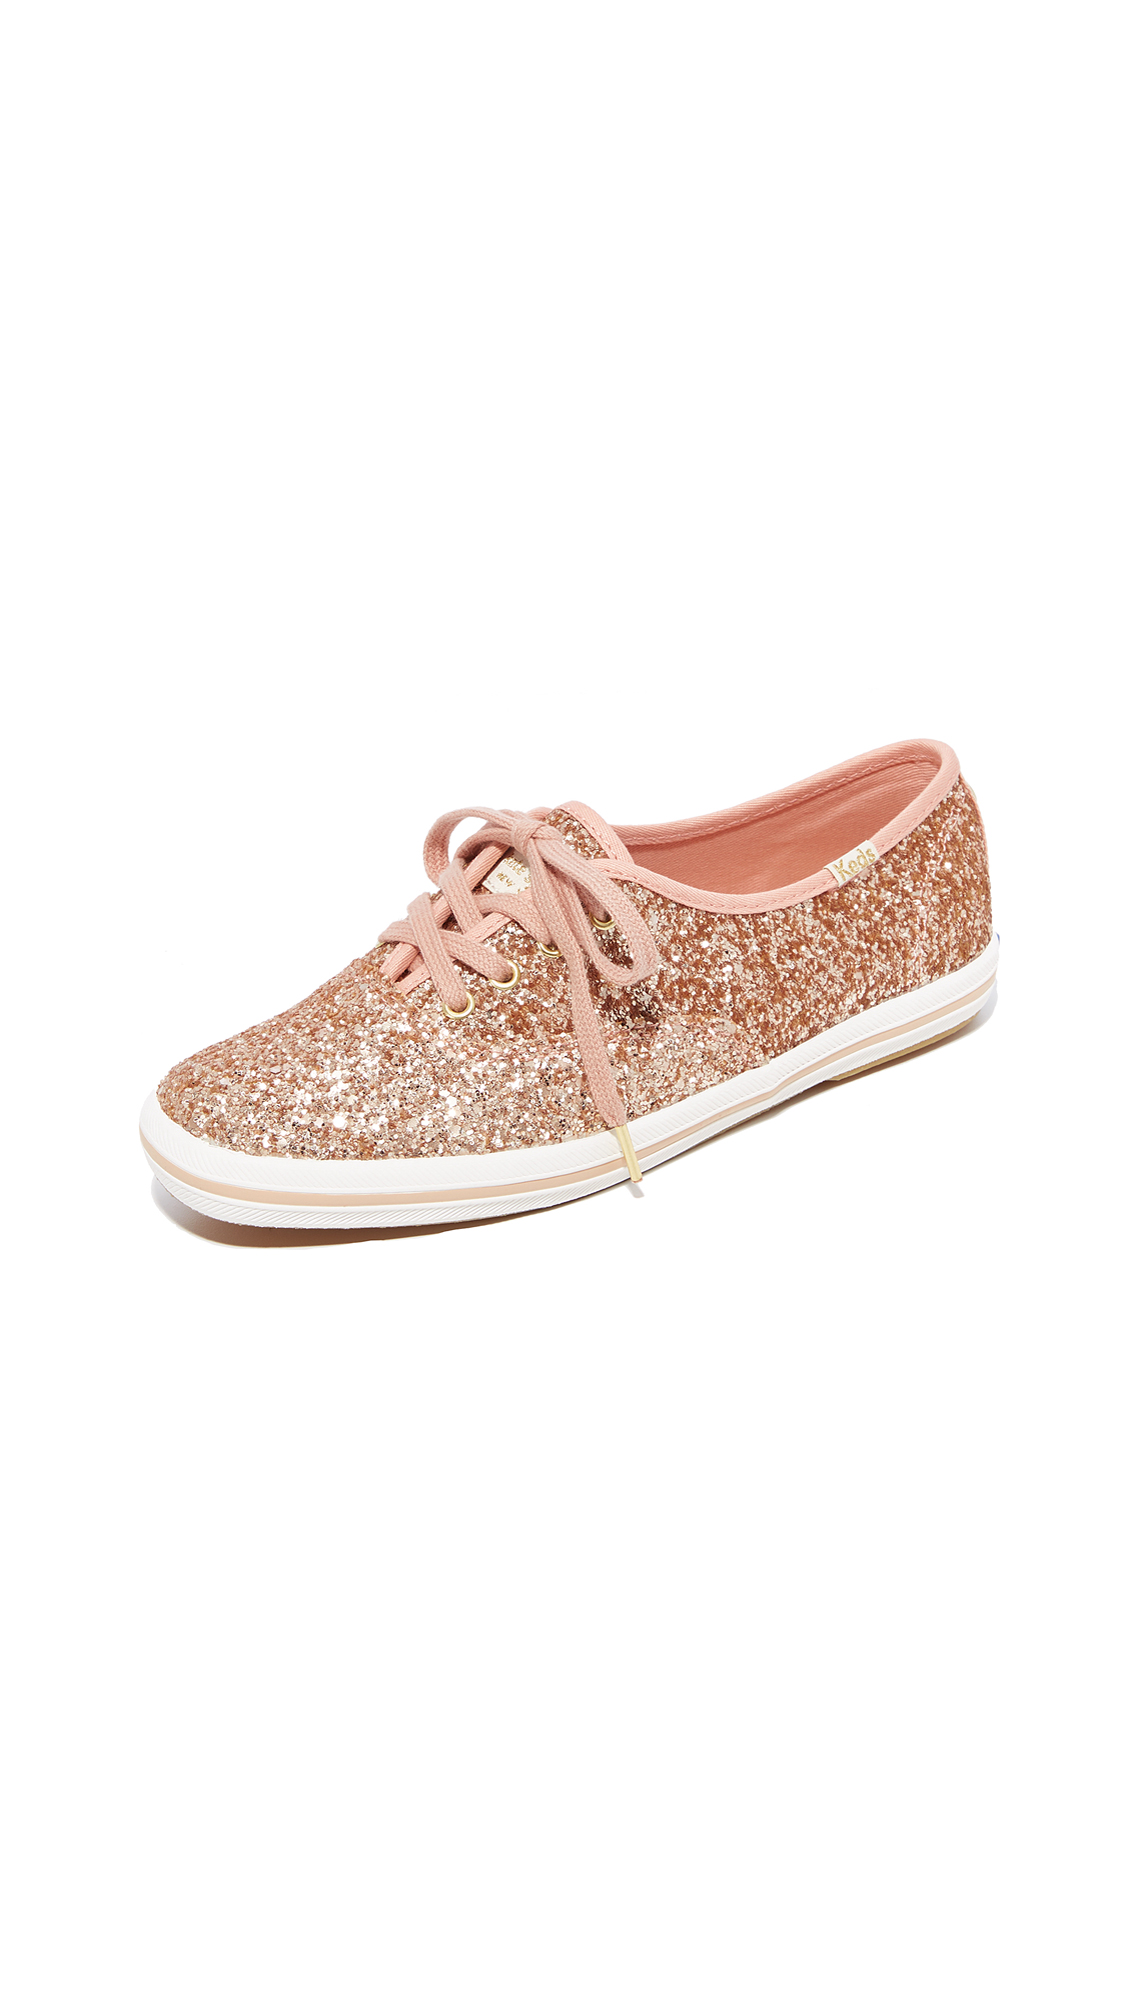 Keds x Kate Spade New York Glitter Sneakers - Rose Gold